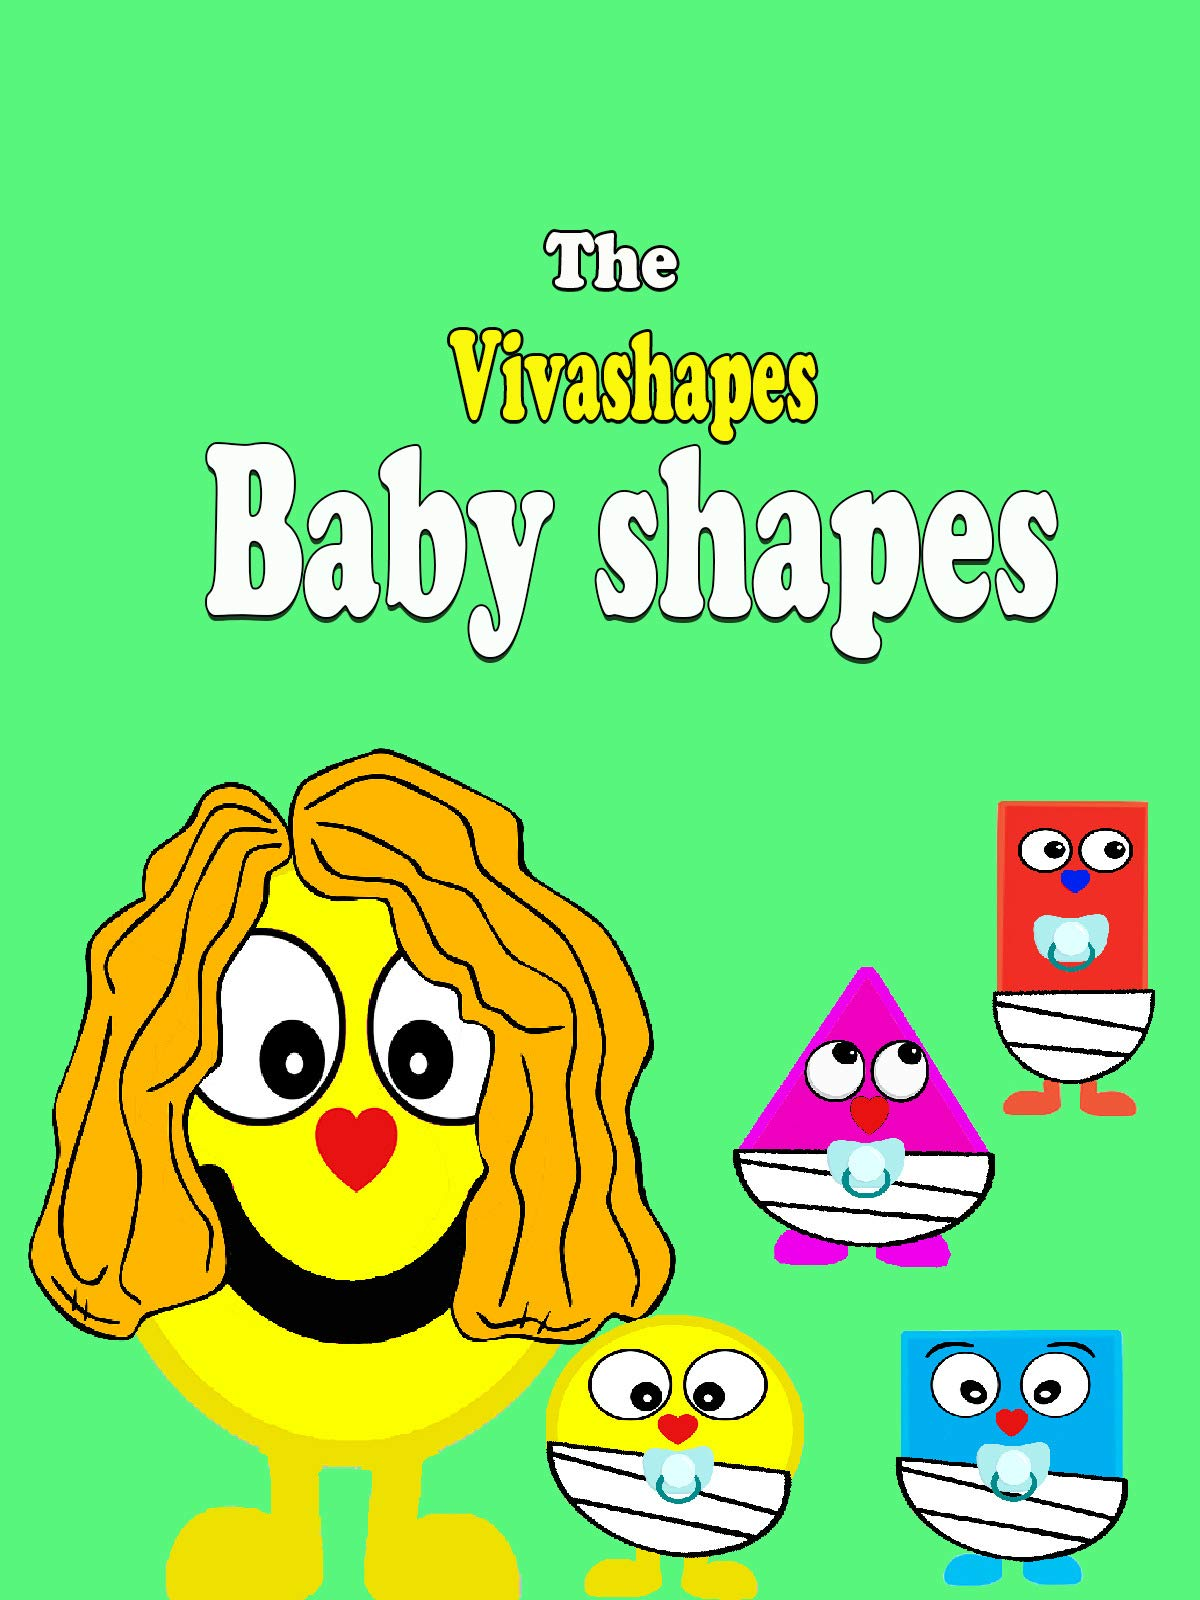 The vivashapes baby shapes. on Amazon Prime Video UK